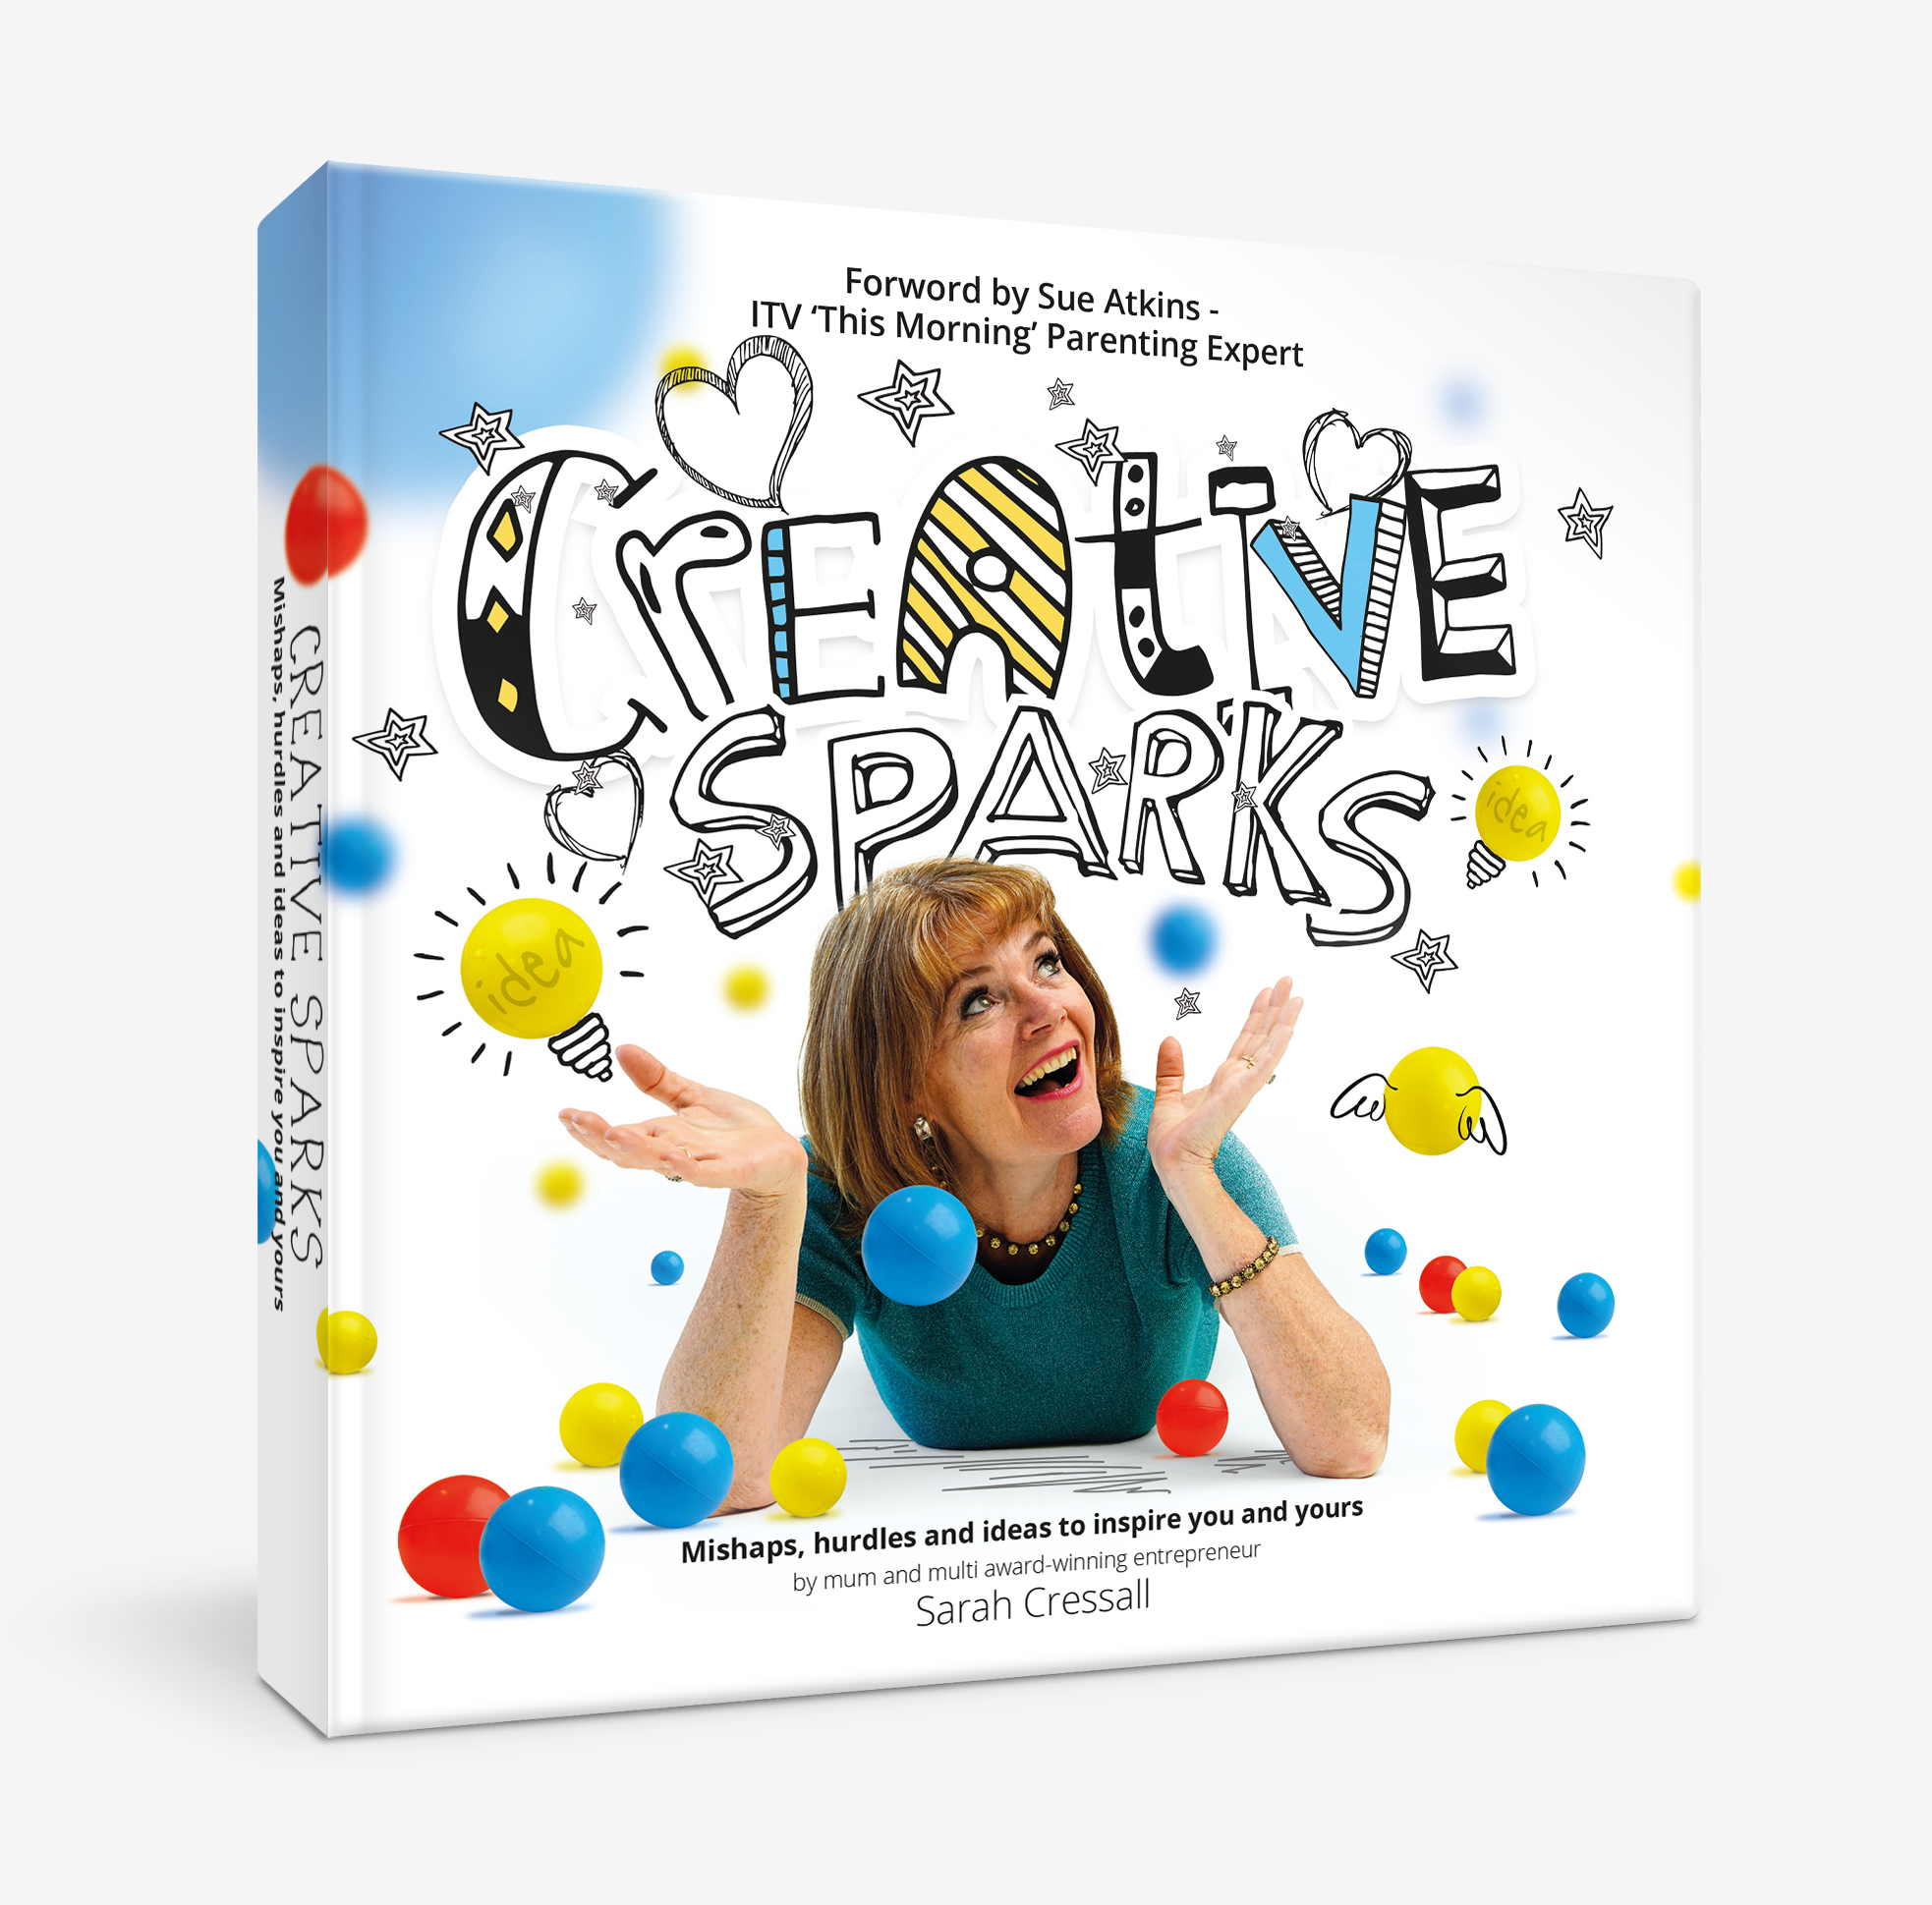 Creative Sparks - Mishaps, hurdles and ideas to inspire you and yours